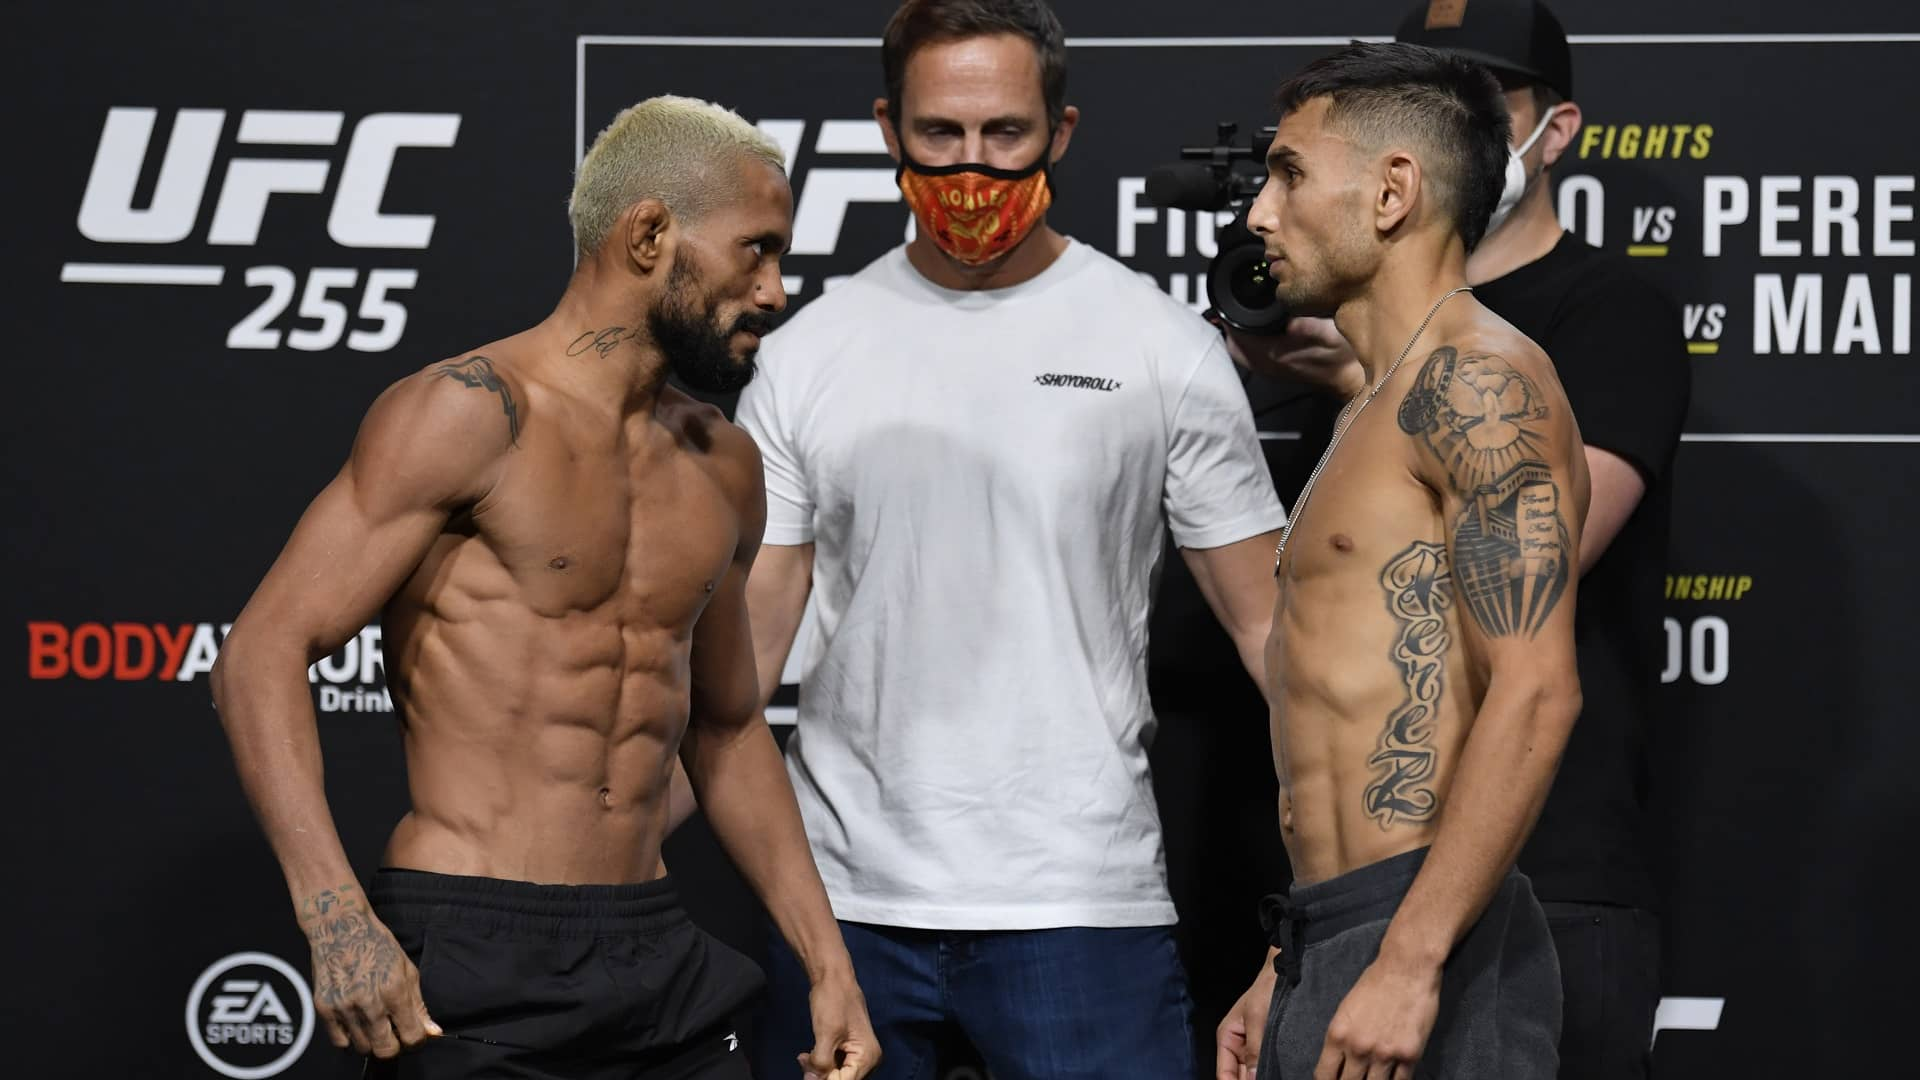 https://lockerroom.in/blog/view/UFC-255-India-Time-Fight-Card